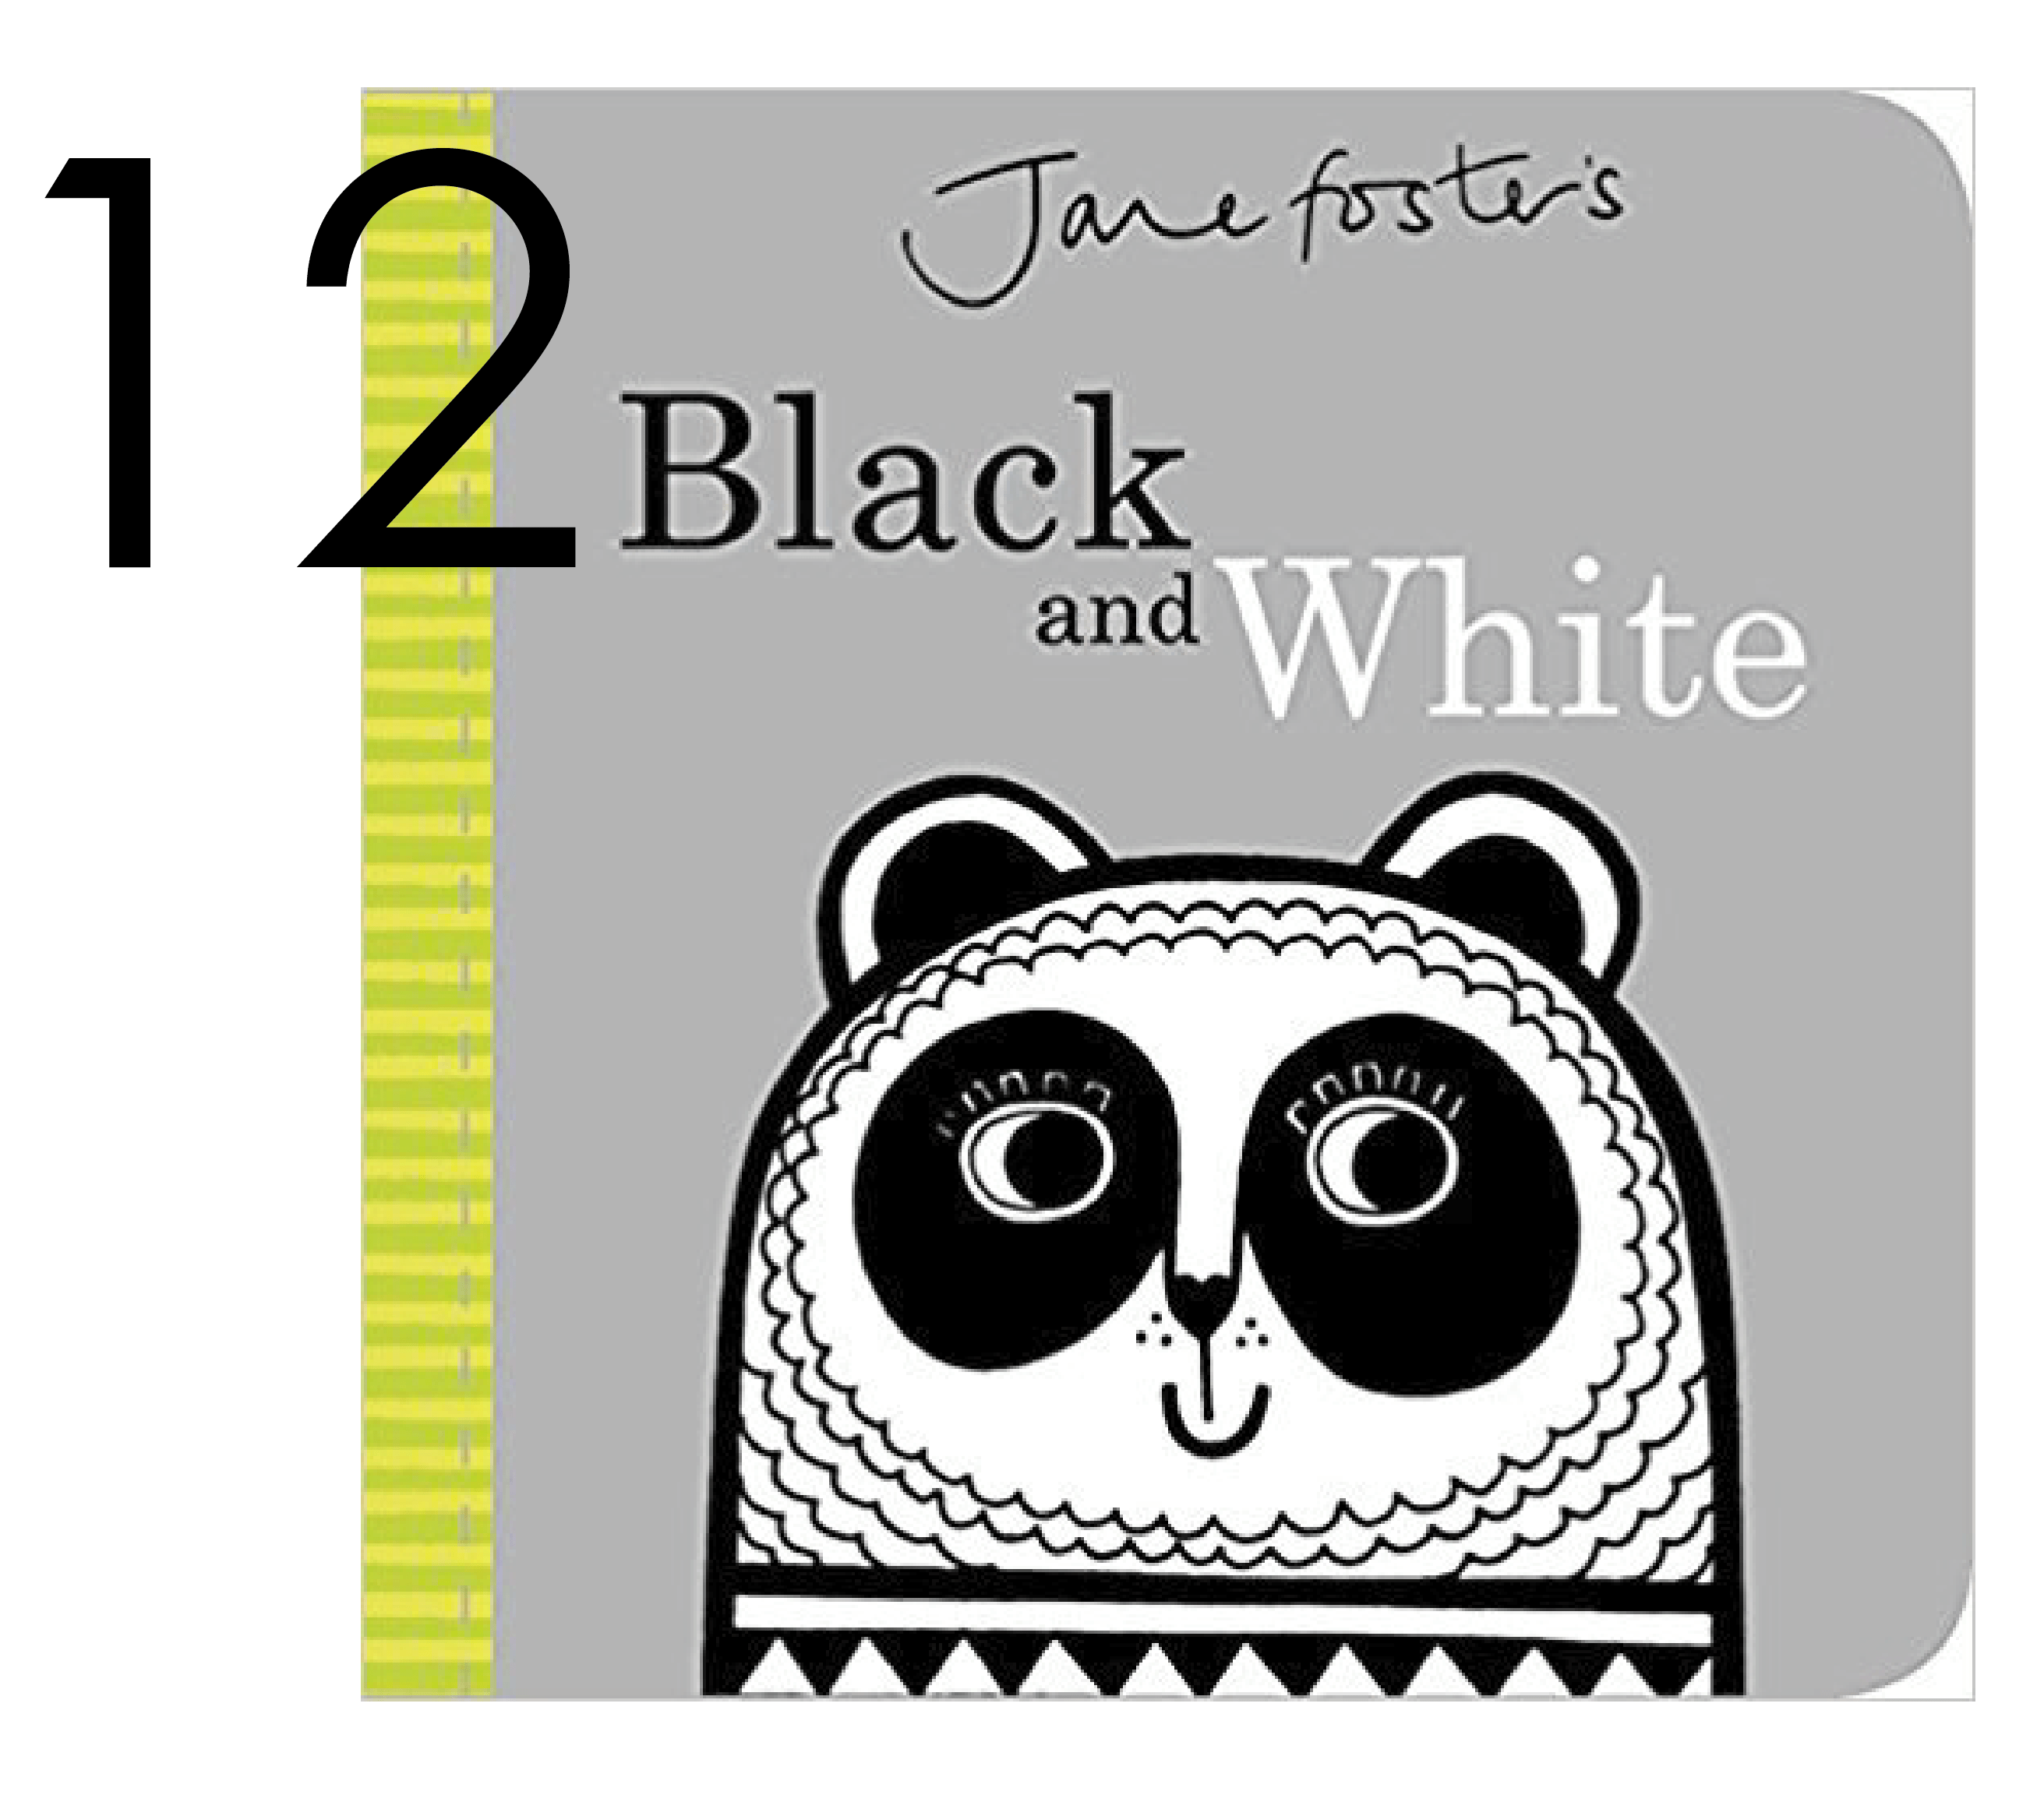 Back and White Infant and Baby Board Book for the Holidays and Christmas